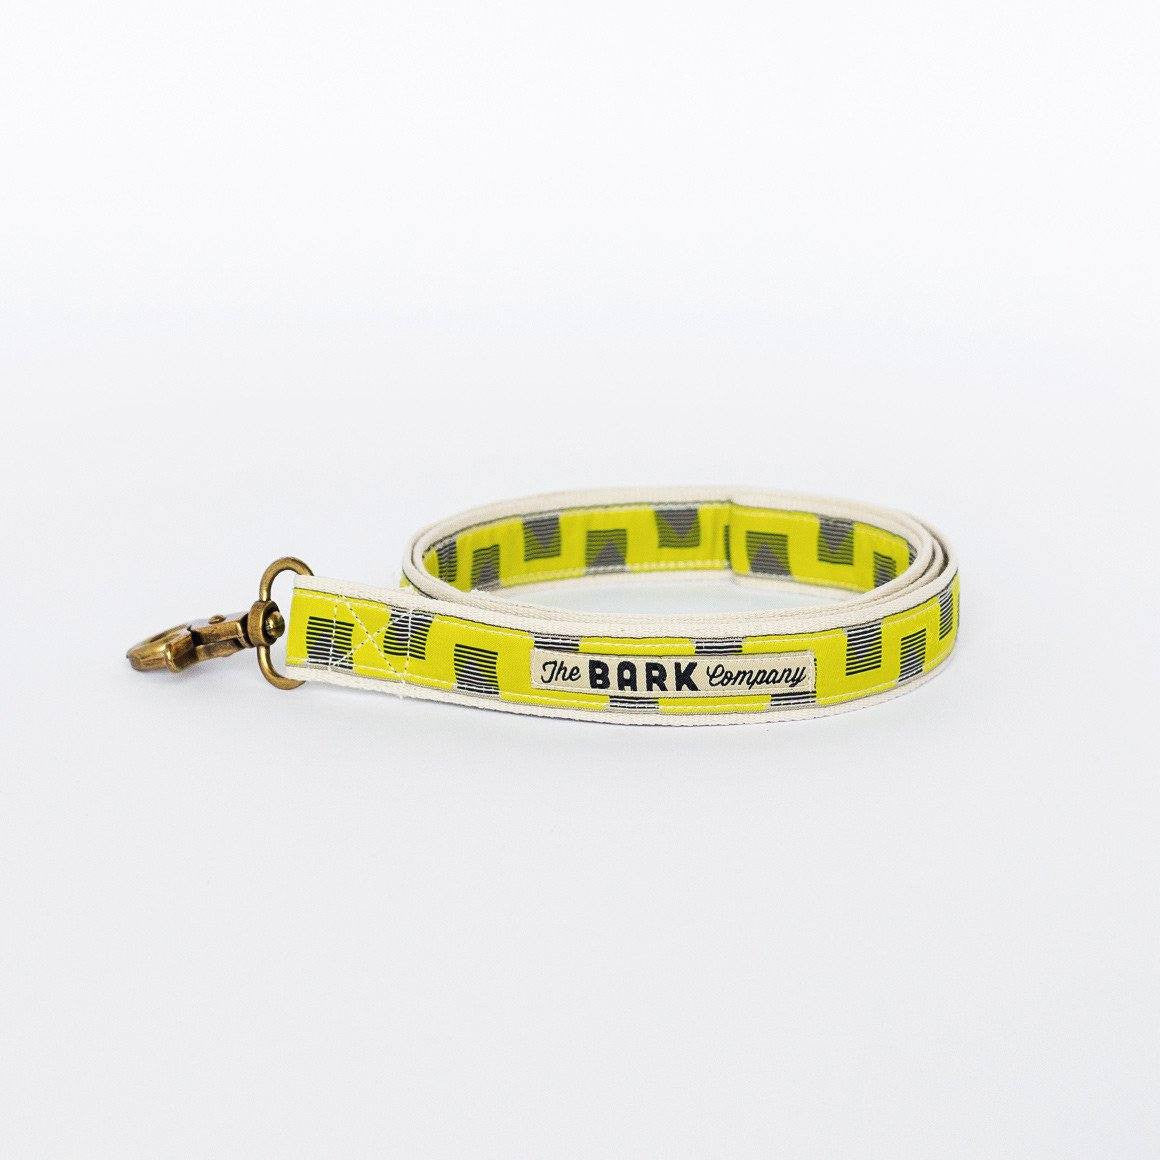 Elvis dog leash - The Bark Co. Handmade dog Leash